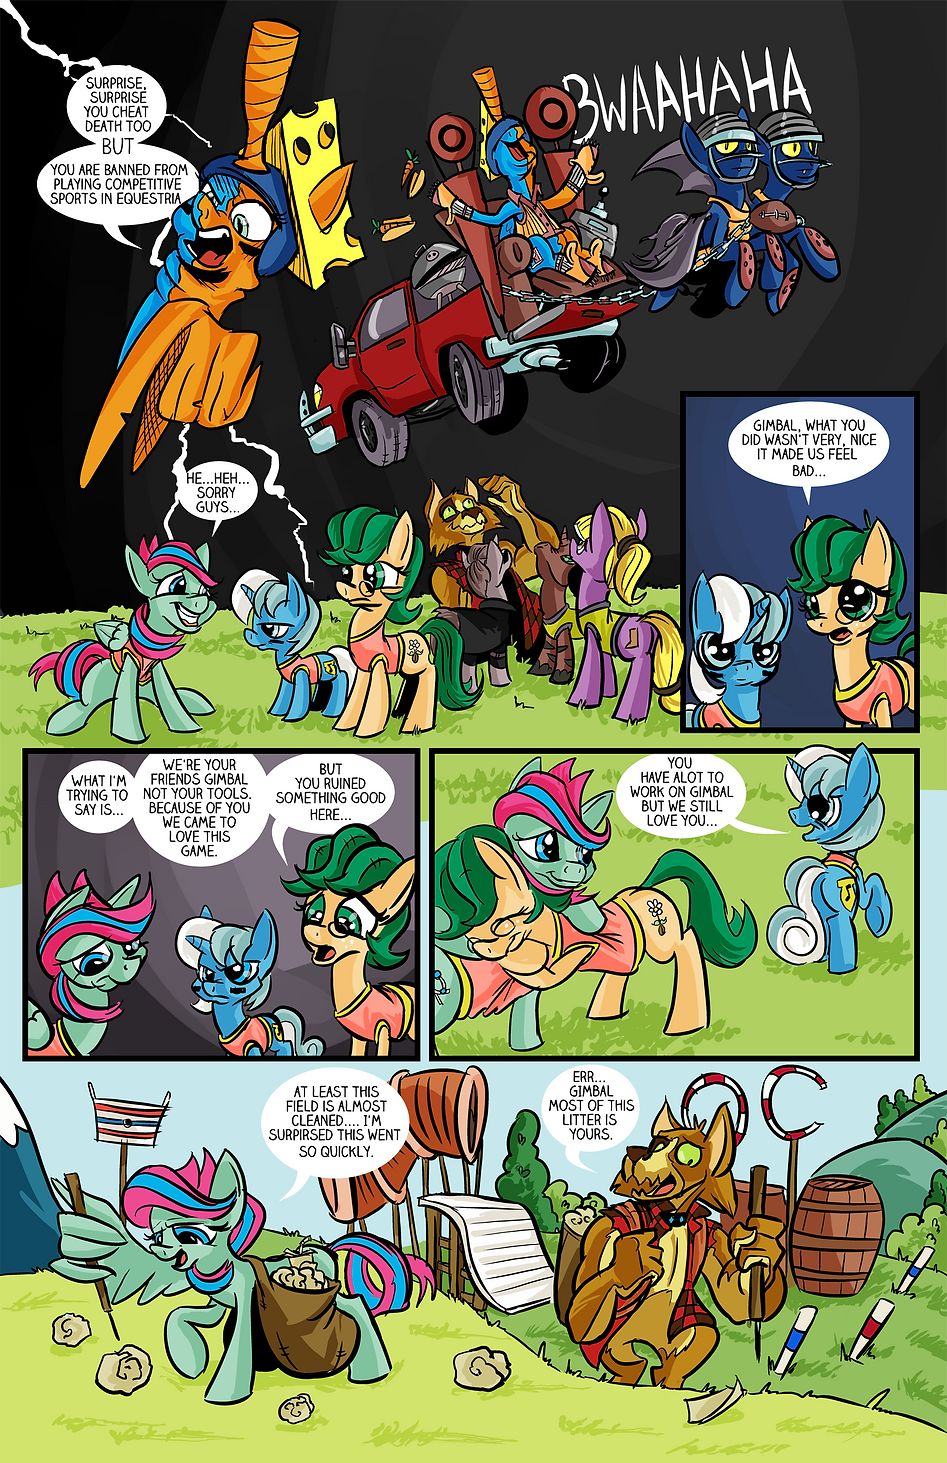 Ponies in the Outfield_27.png